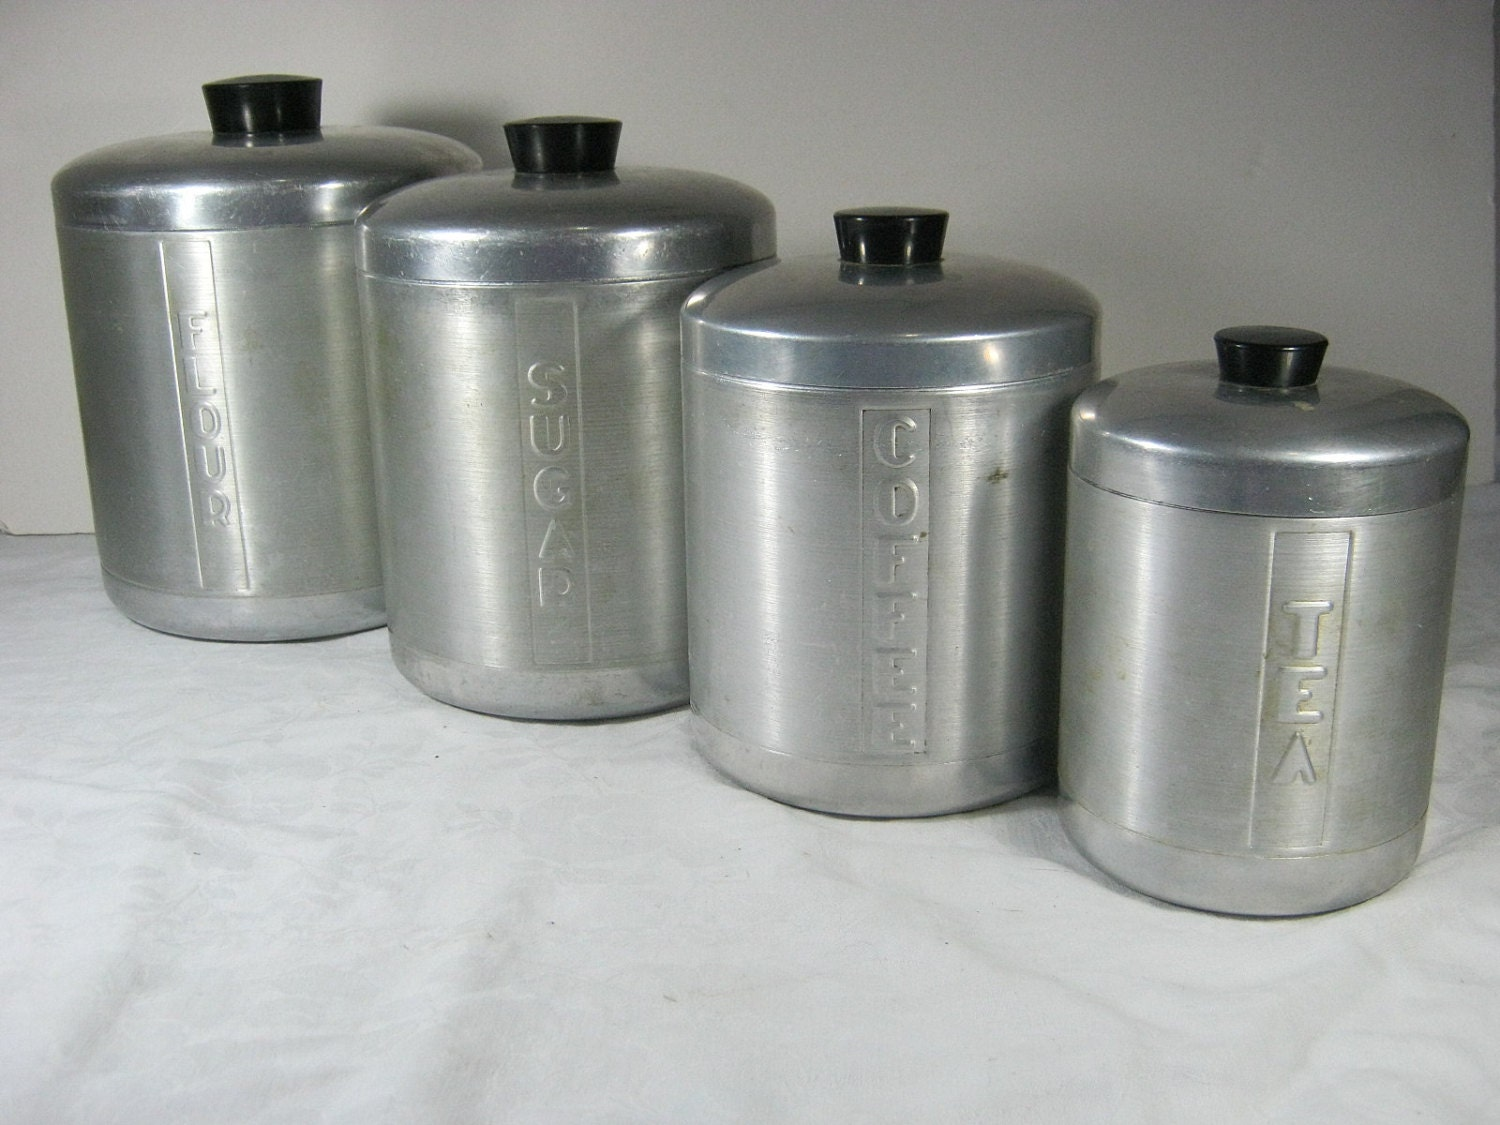 vintage aluminum canisters retro 50s canister set 4 vintage canister set antique white with ornate details